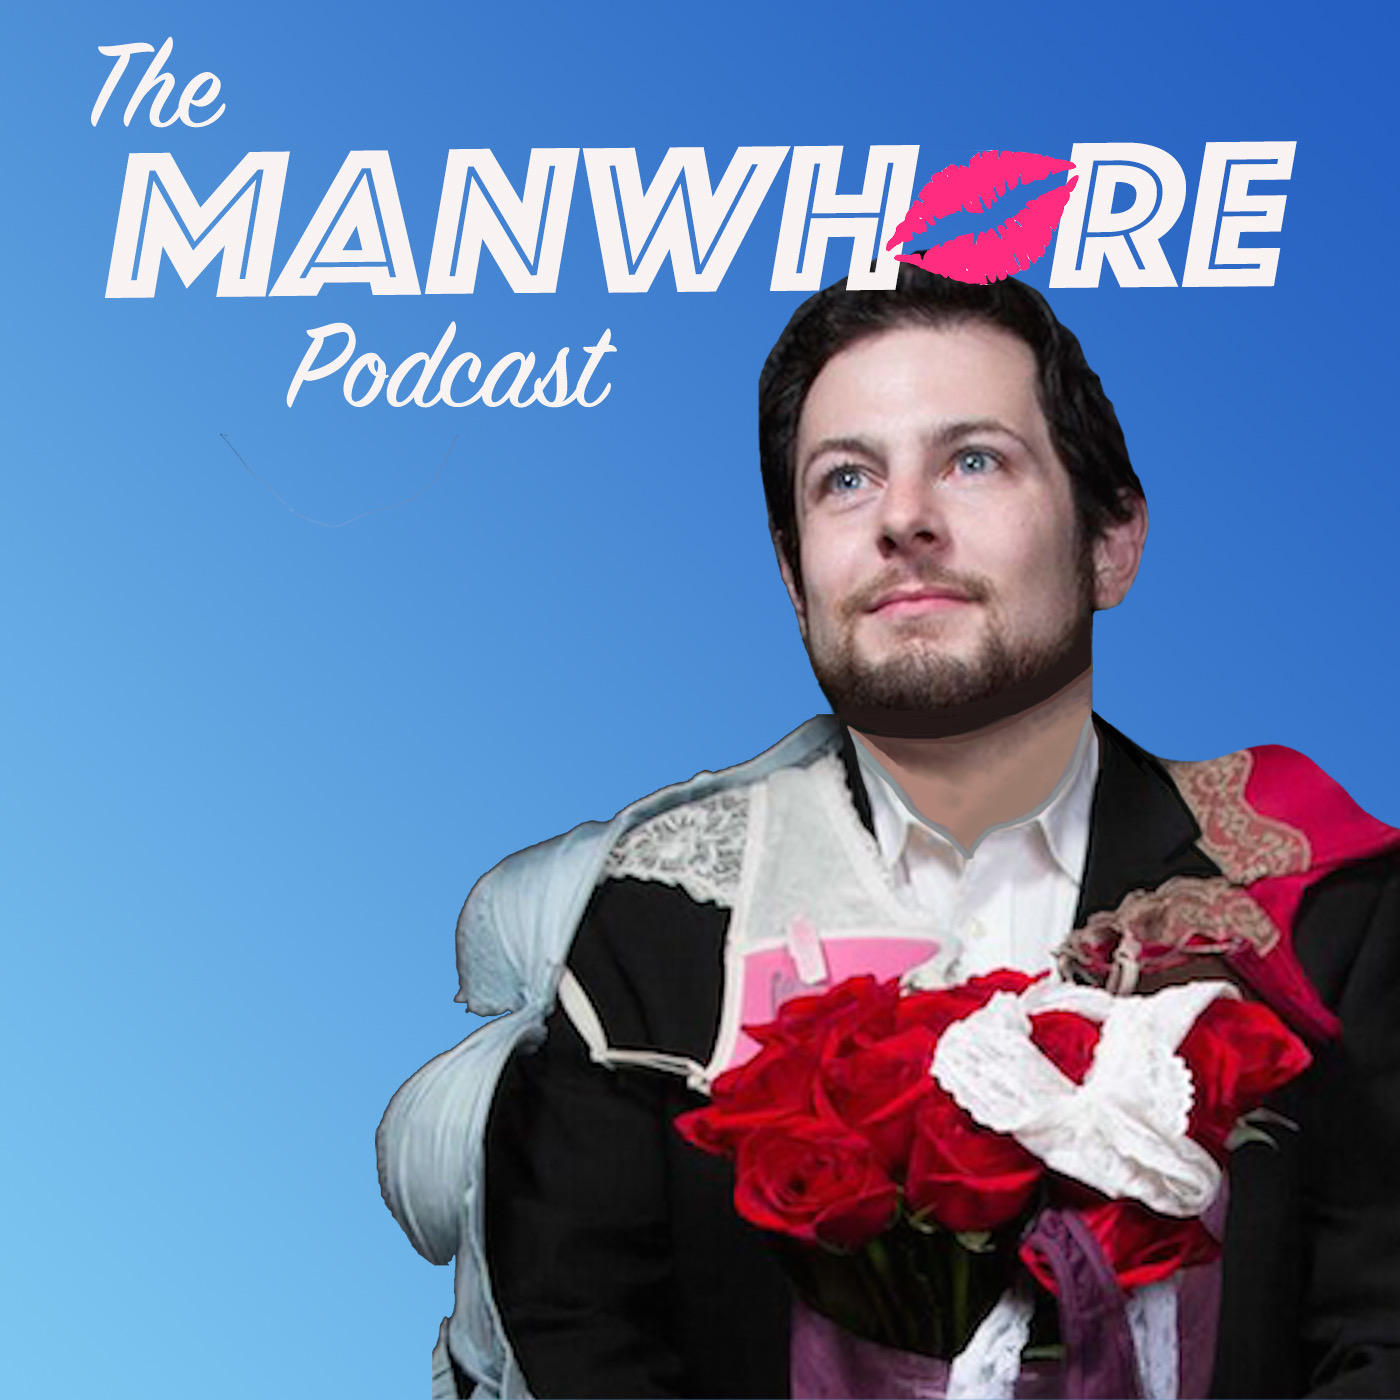 The Manwhore Podcast: A Sex-Positive Quest - Ep. 343: Be Careful With The F*ck Saw